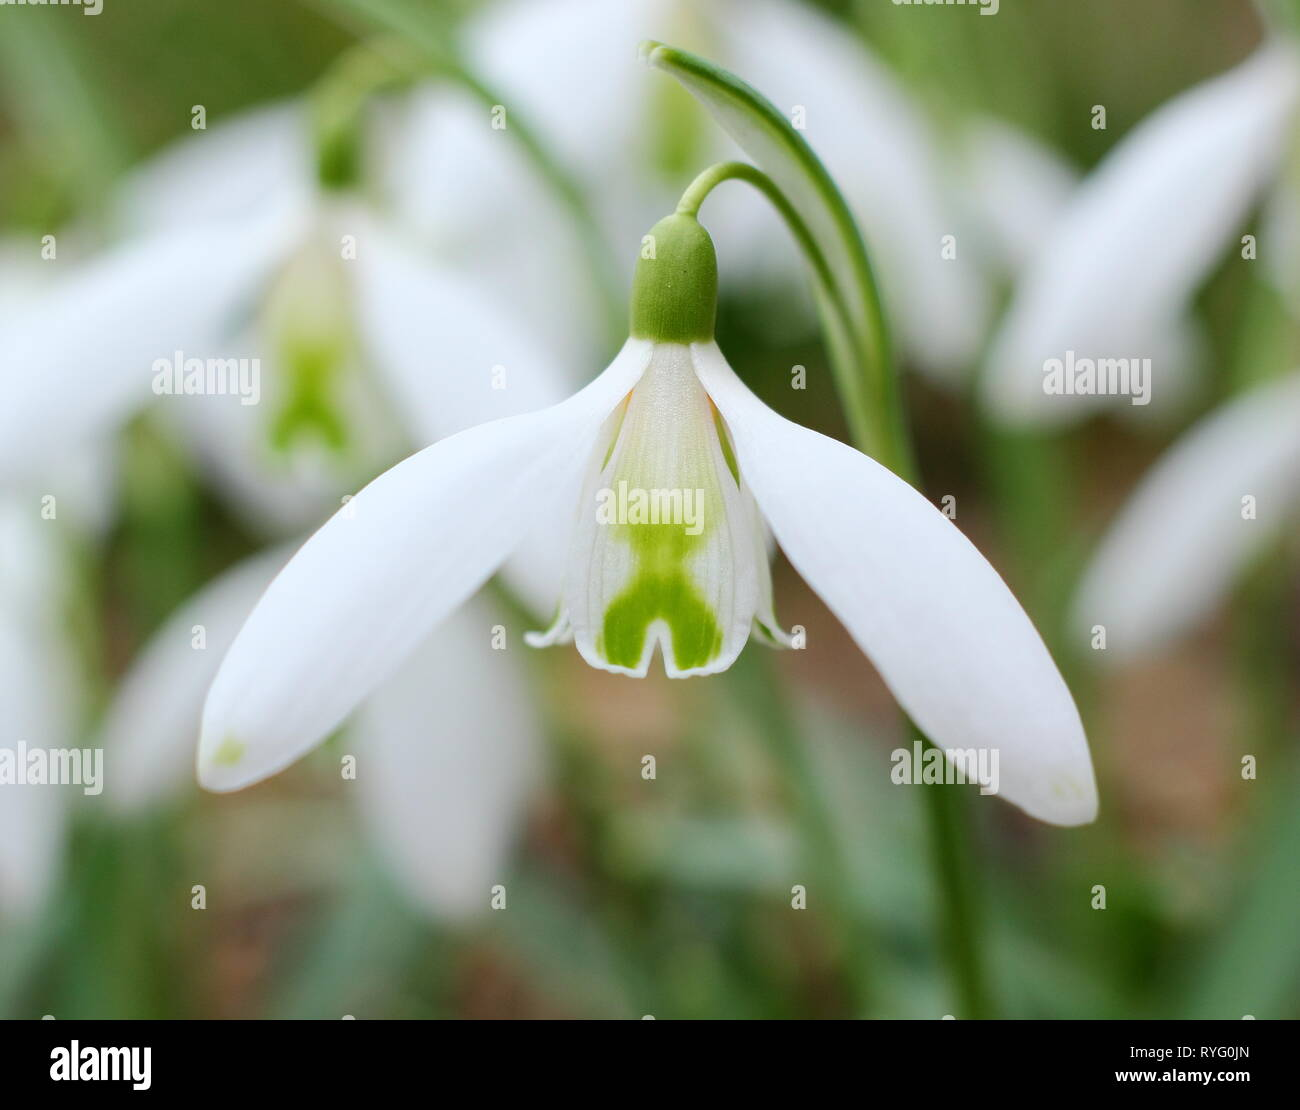 Galanthus 'Curly. Fragrant blooms of Snowdrop 'Curly' displaying a distinctive green cross on inner segments - February, UK garden - Stock Image